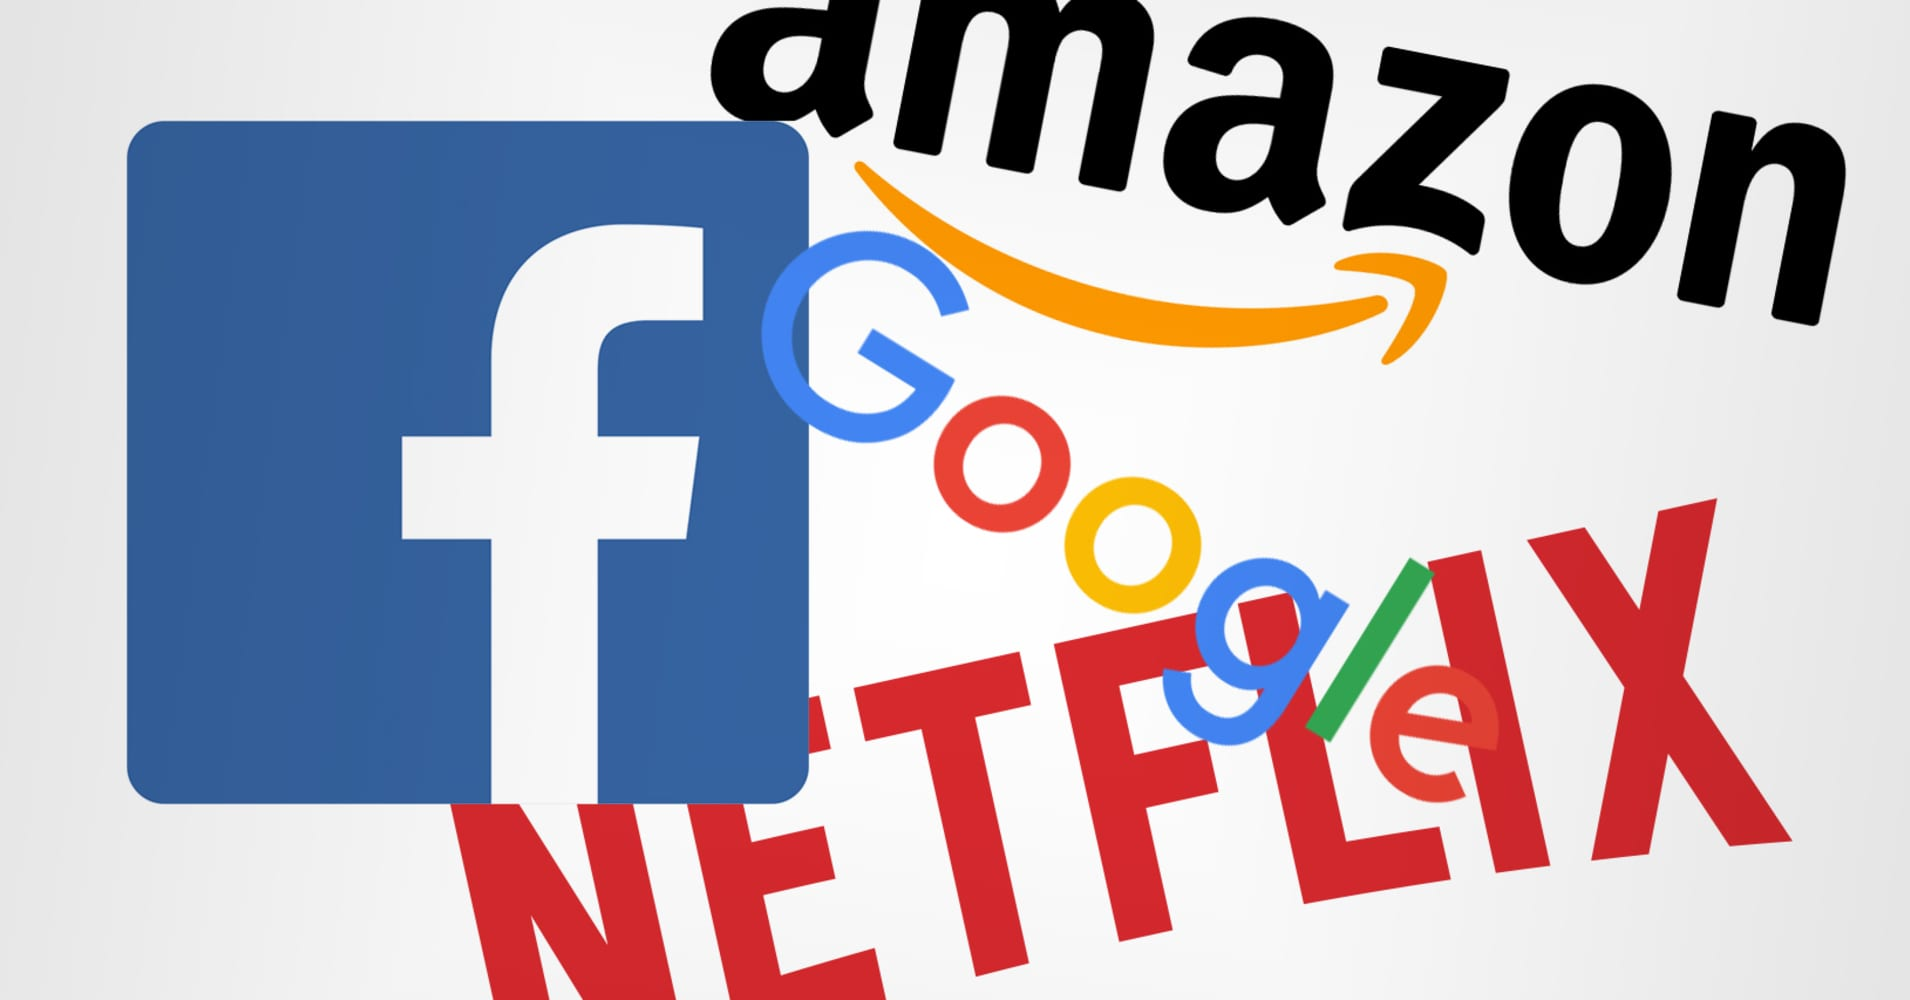 cnbc.com - Eric Rosenbaum - Alphabet, Facebook and Netflix are about to destroy the stock market's biggest dividend trade